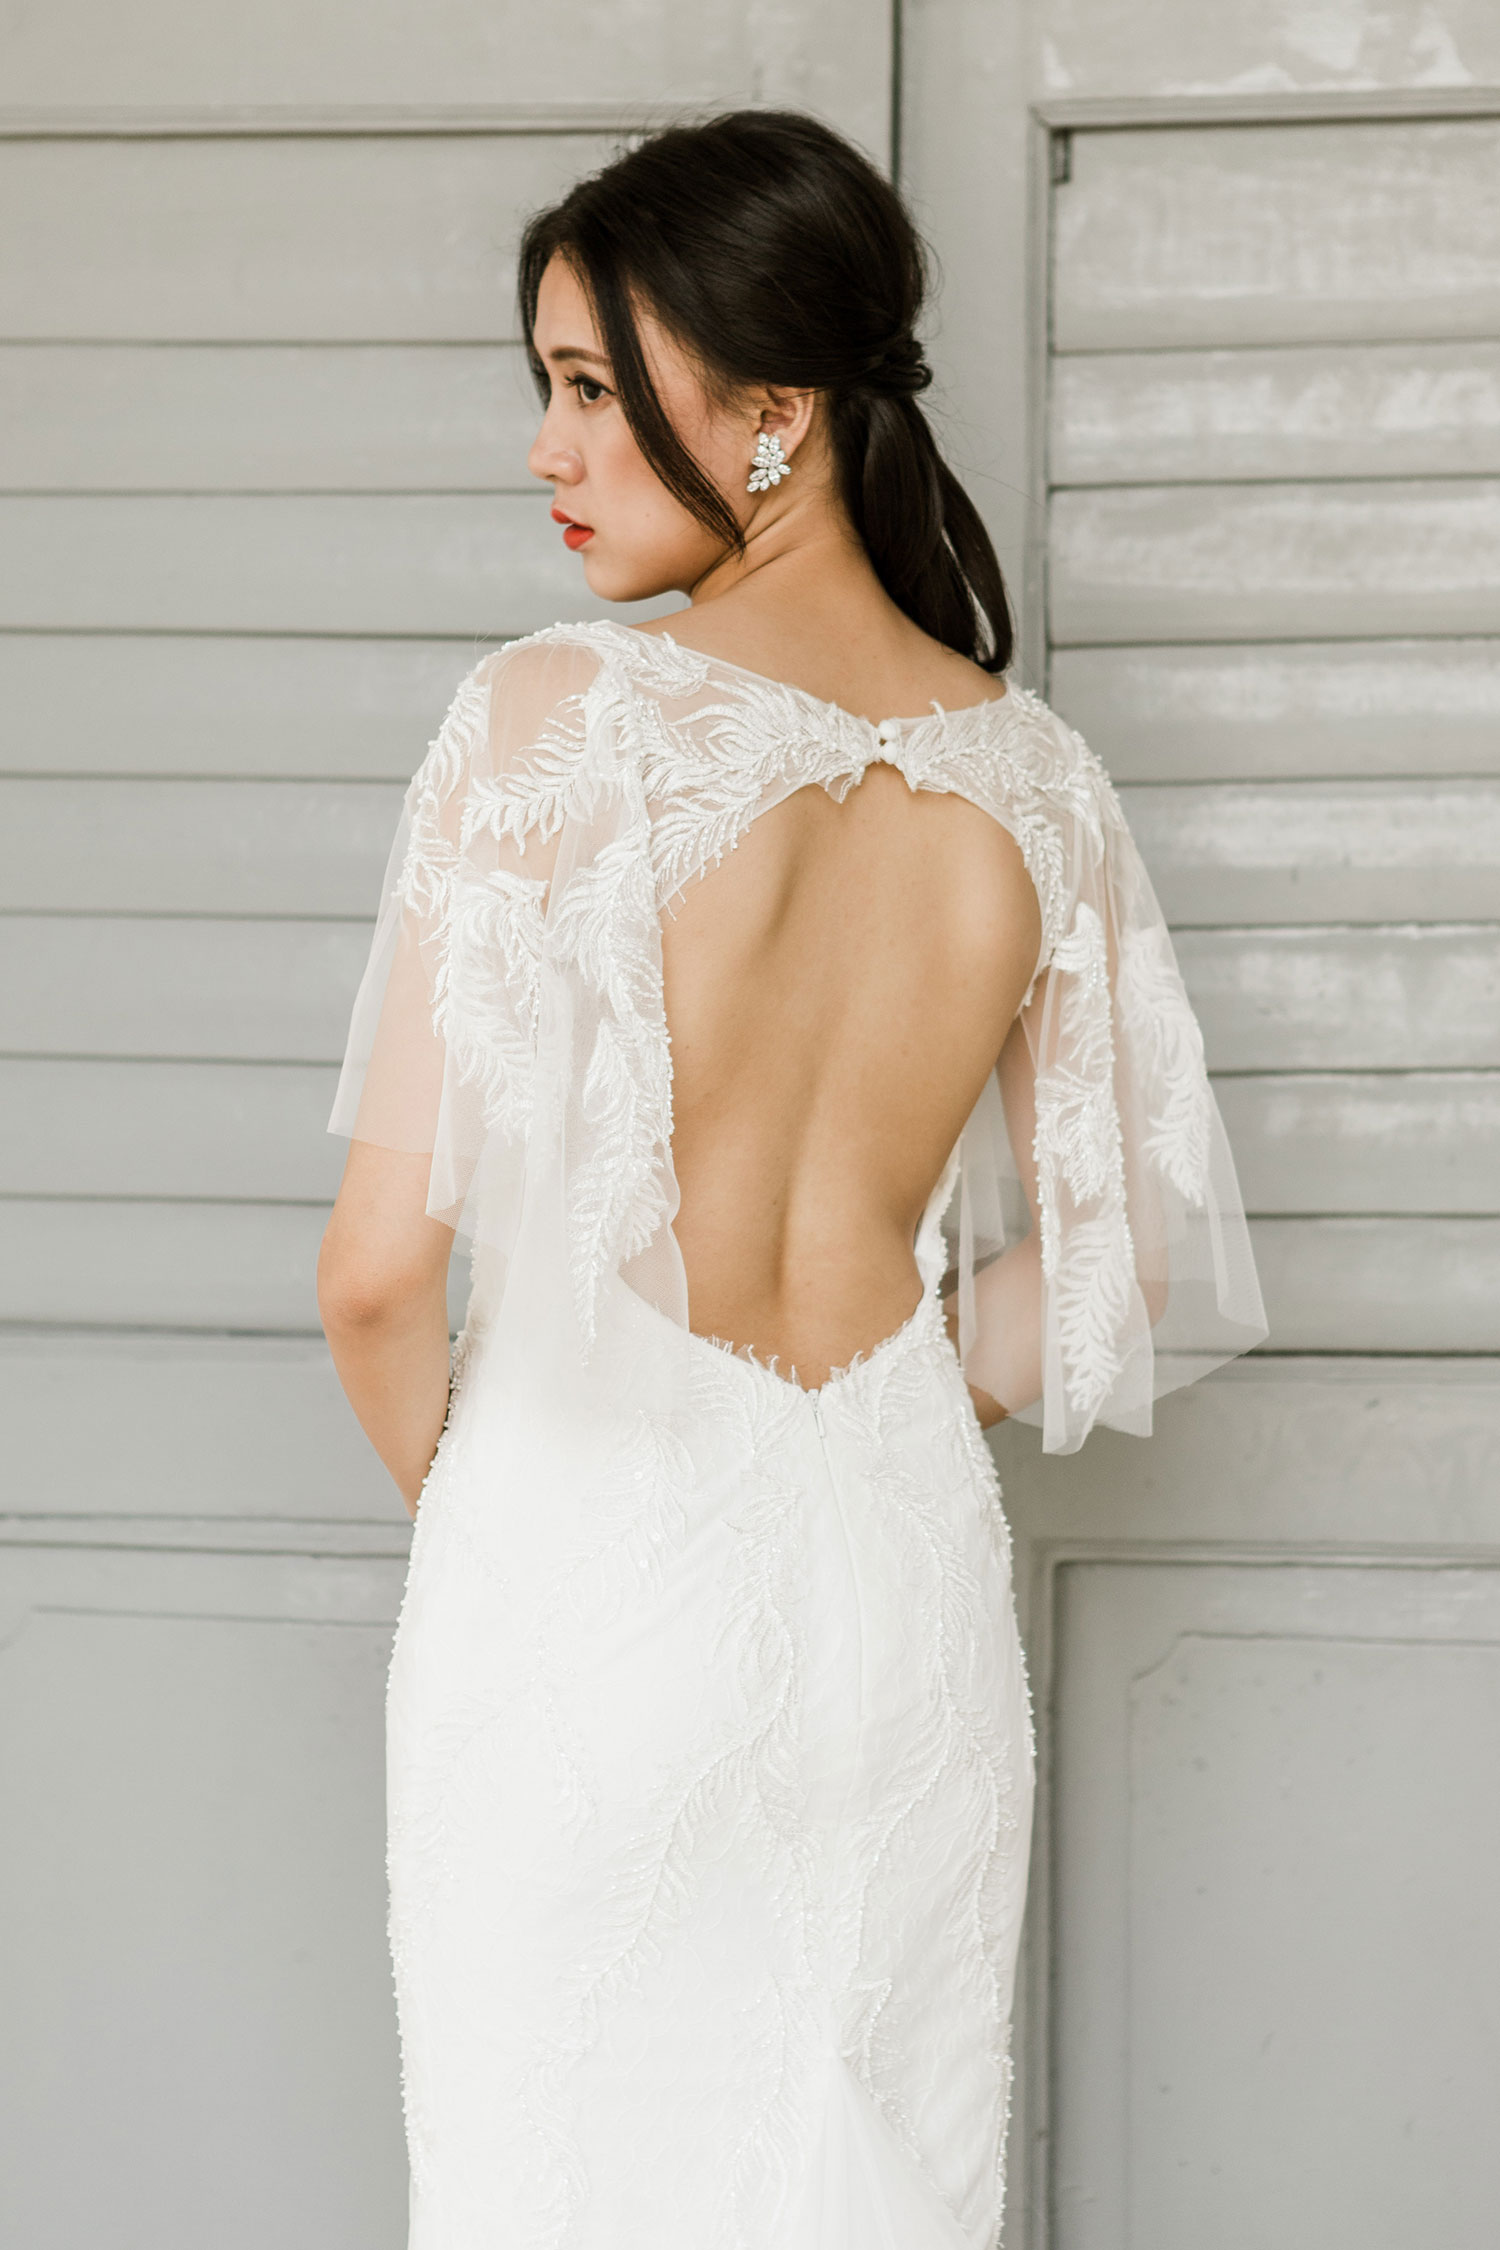 Backless wedding dress with short sleeves by CCM Wedding